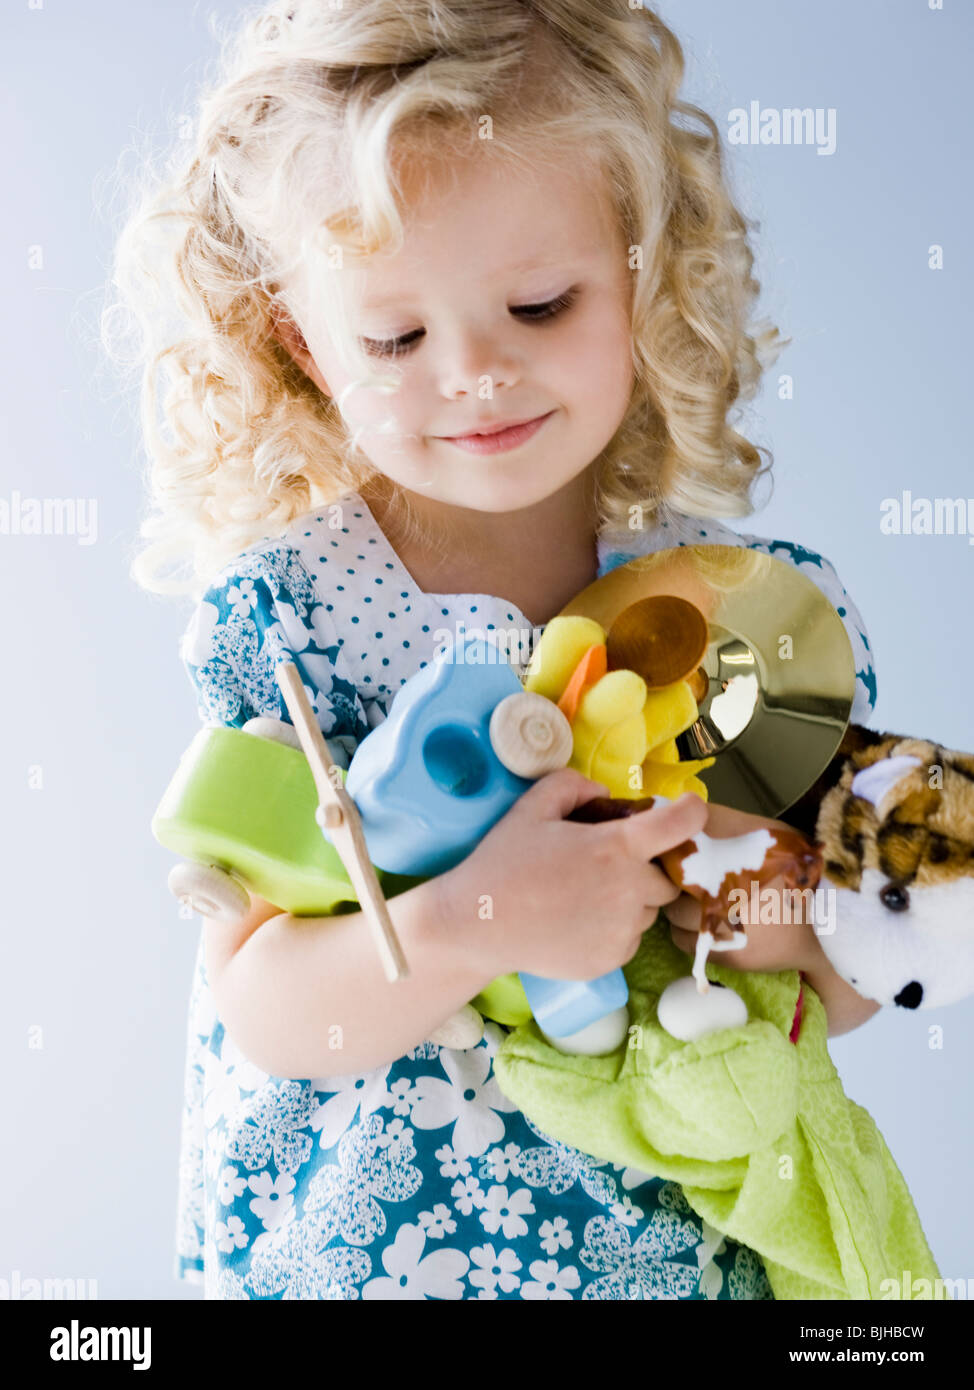 little girl holding an armful of her toys - Stock Image